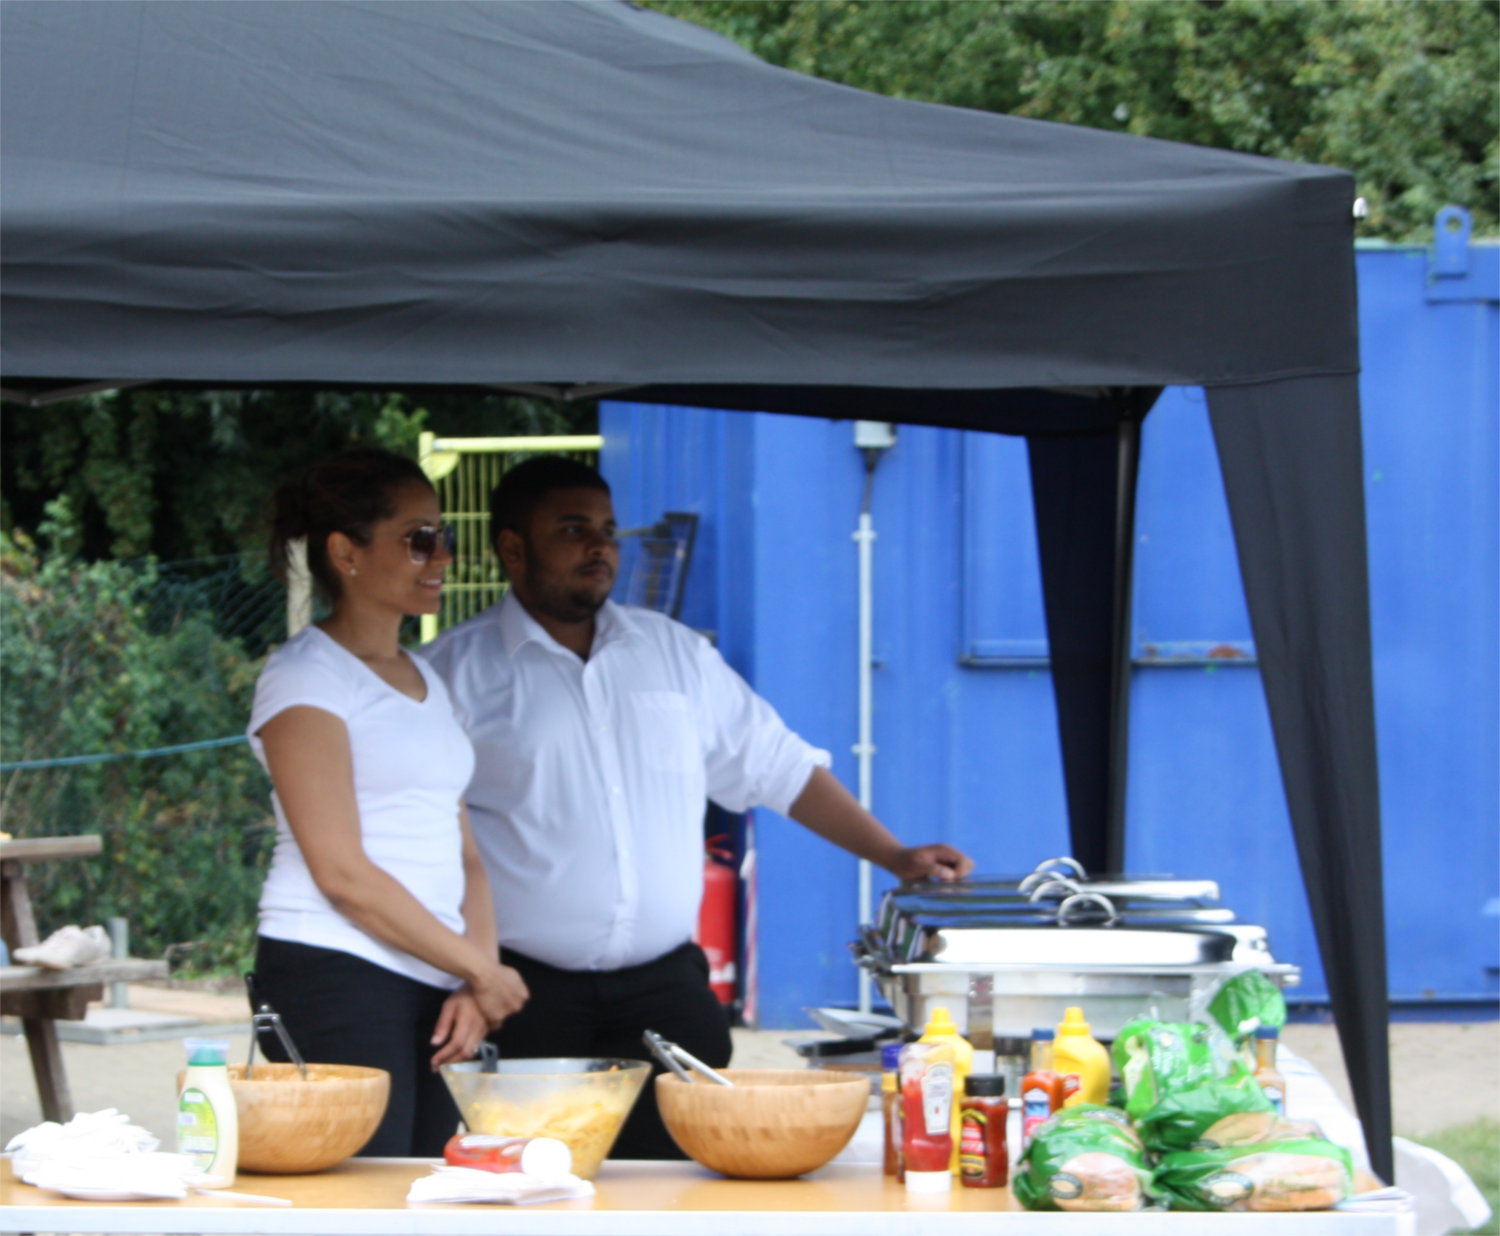 Business Catering for Staff Fun Day London